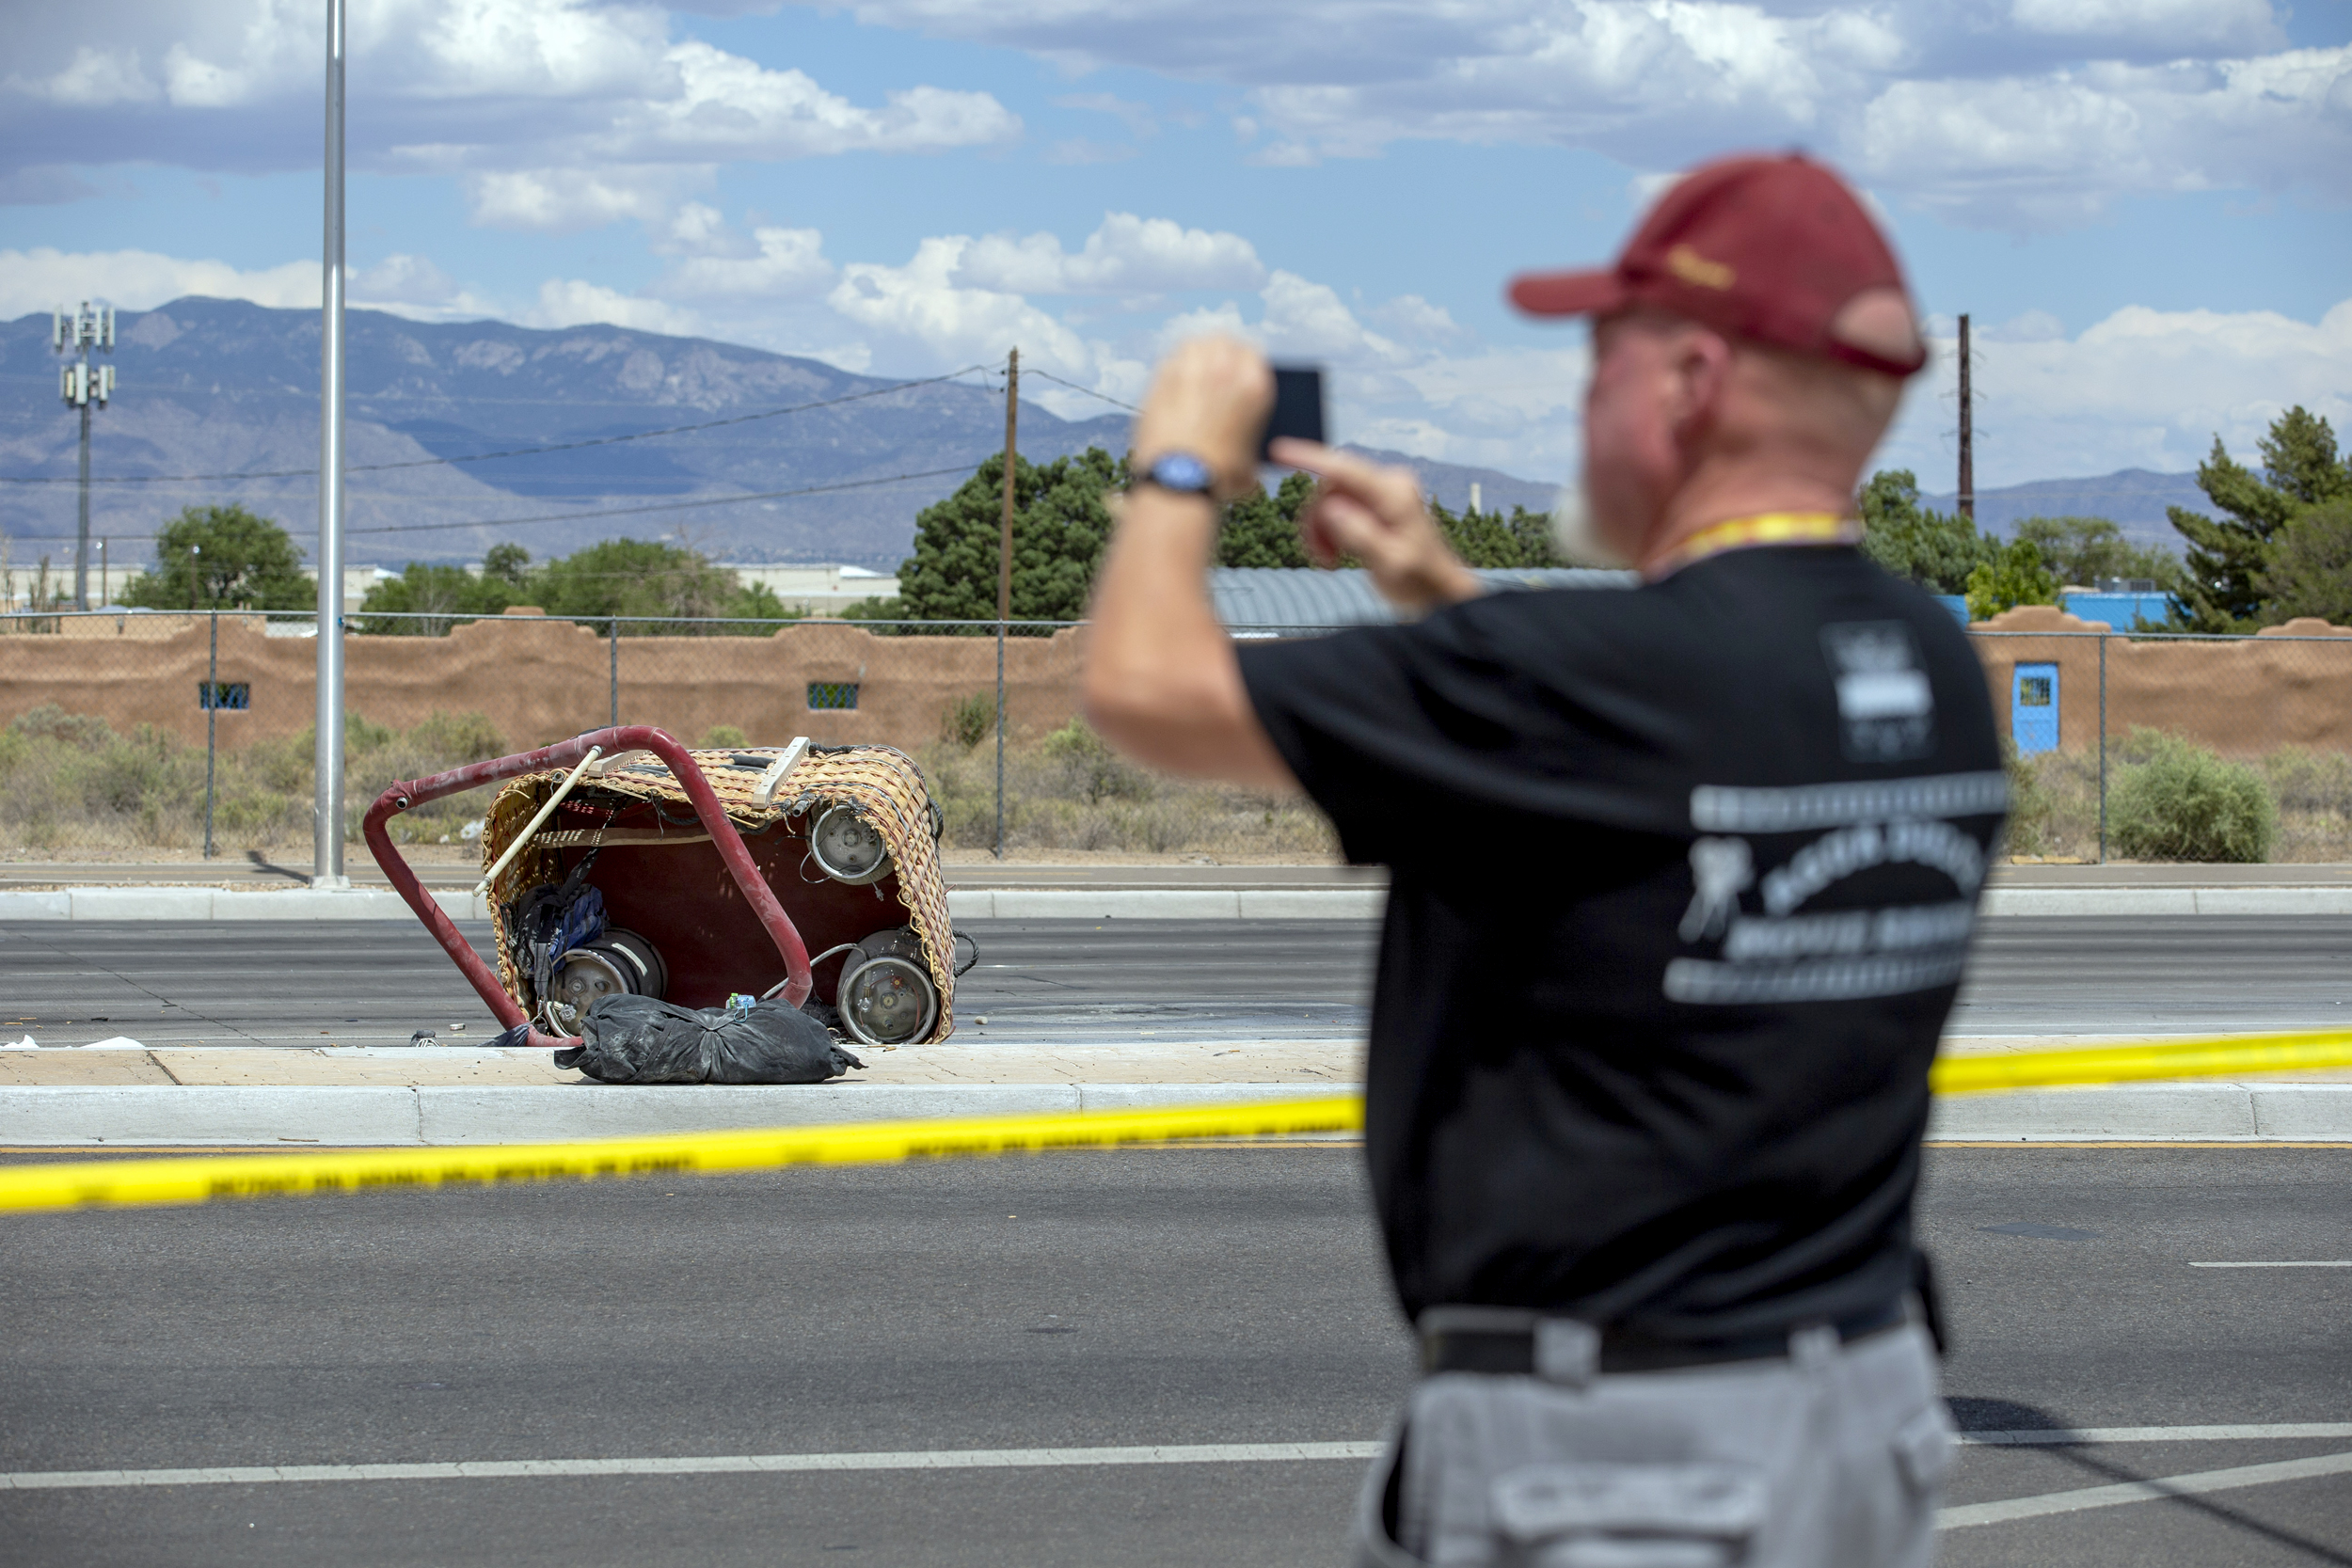 Pilot in balloon crash that killed 5 had drugs in system, FAA says